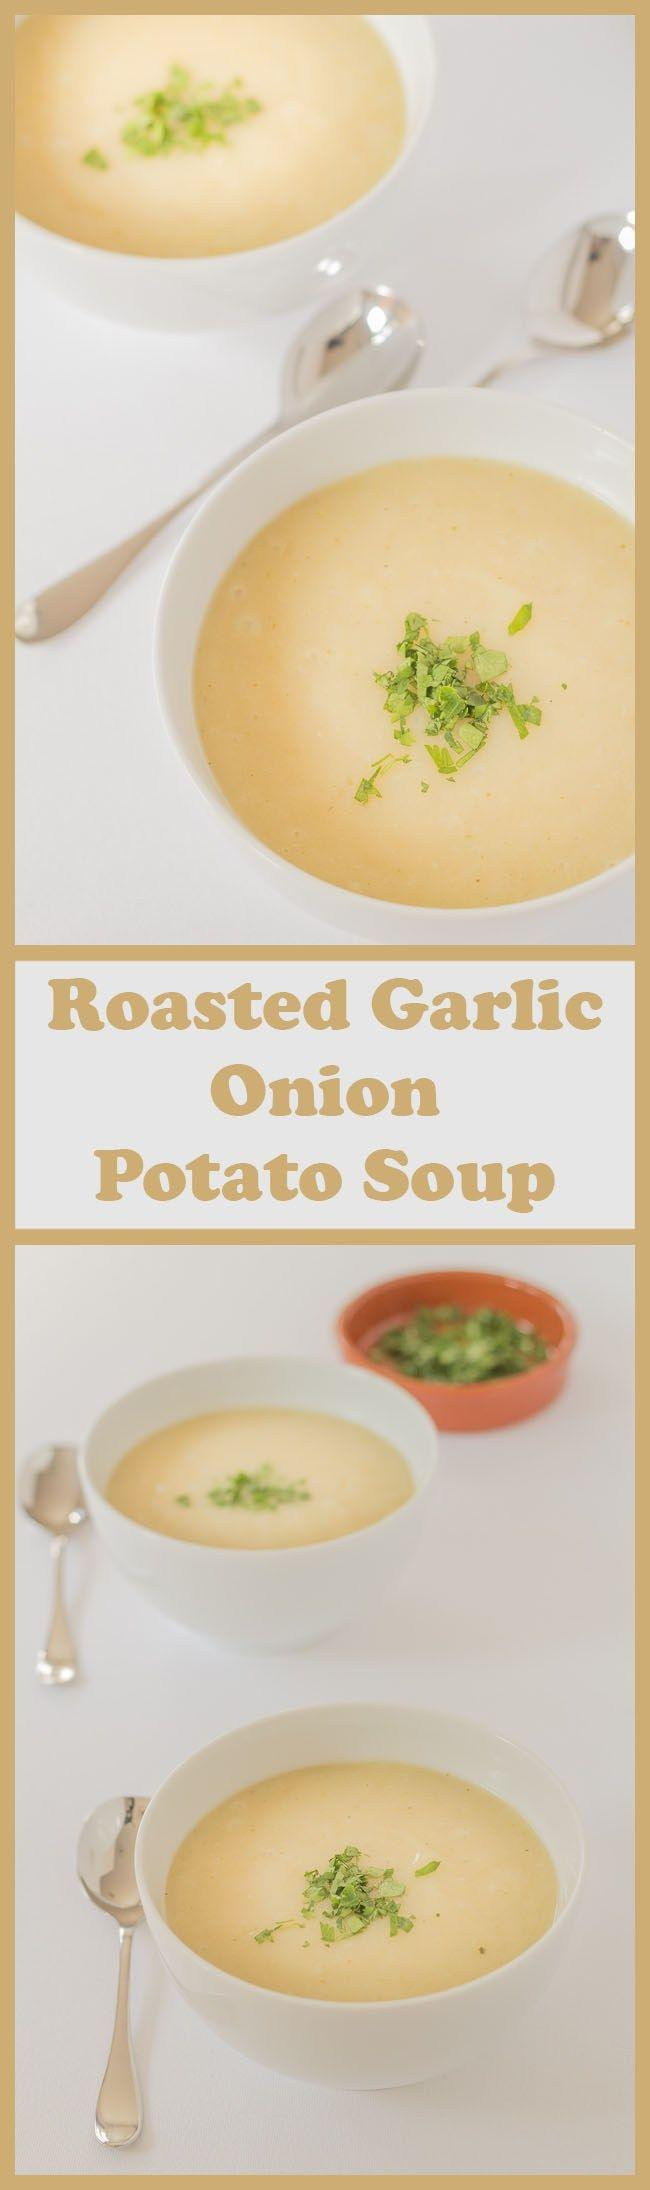 Wedding - Roasted Garlic Onion And Potato Soup